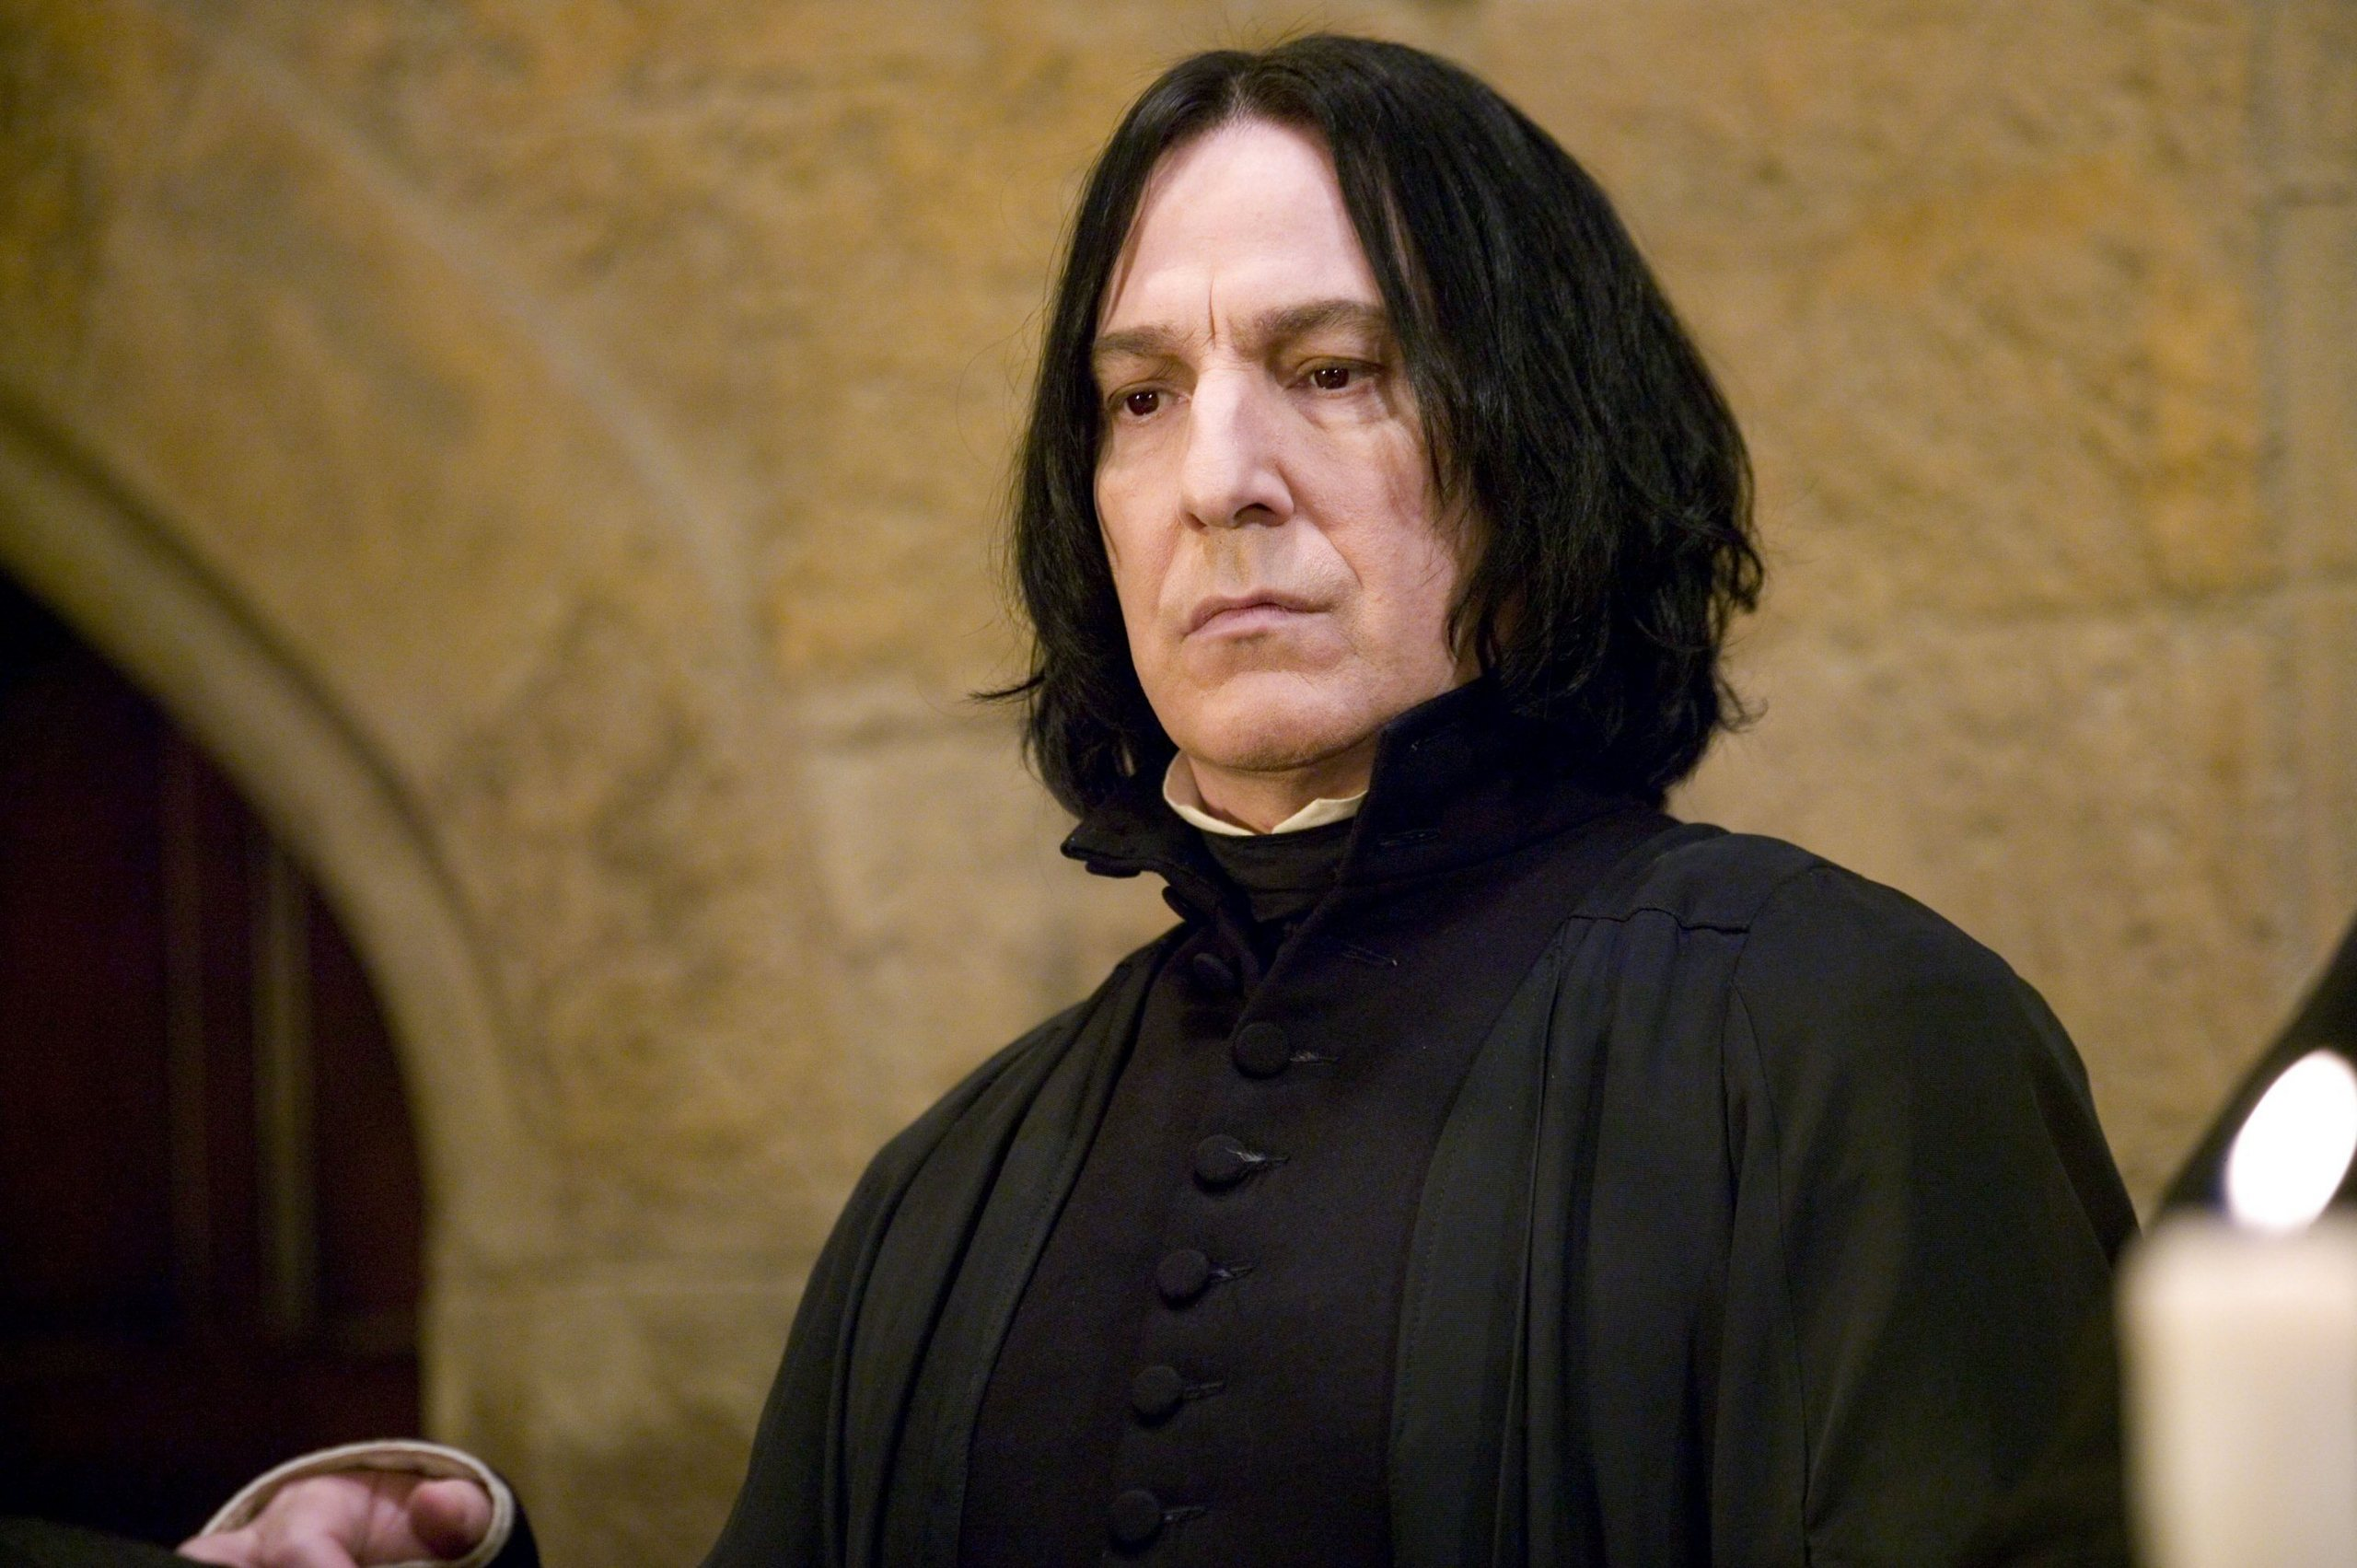 Prepare to search for Gate 9 3/4 — American Airlines says Snape really DOES work for them